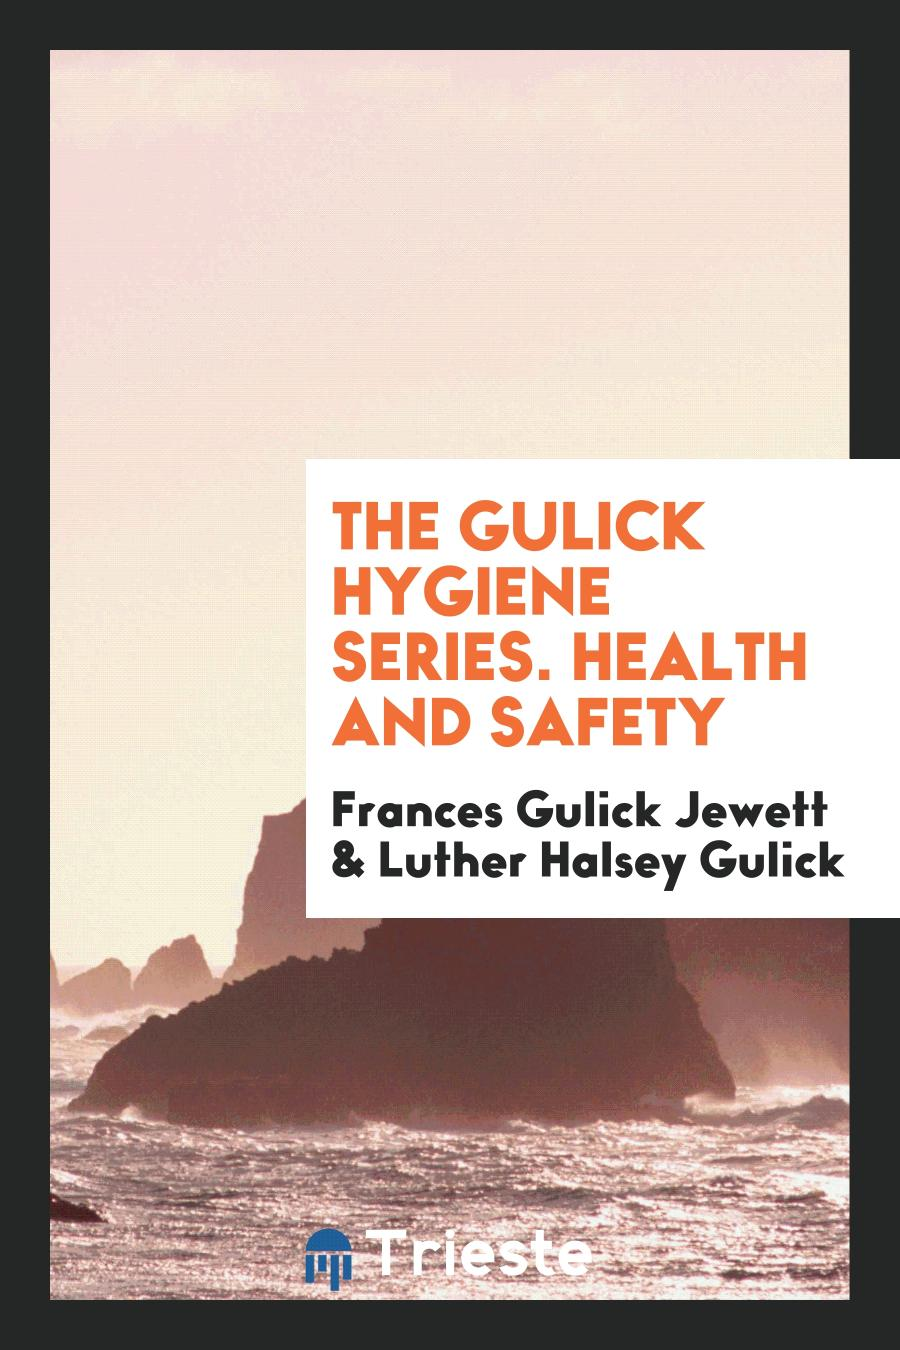 The Gulick Hygiene Series. Health and Safety